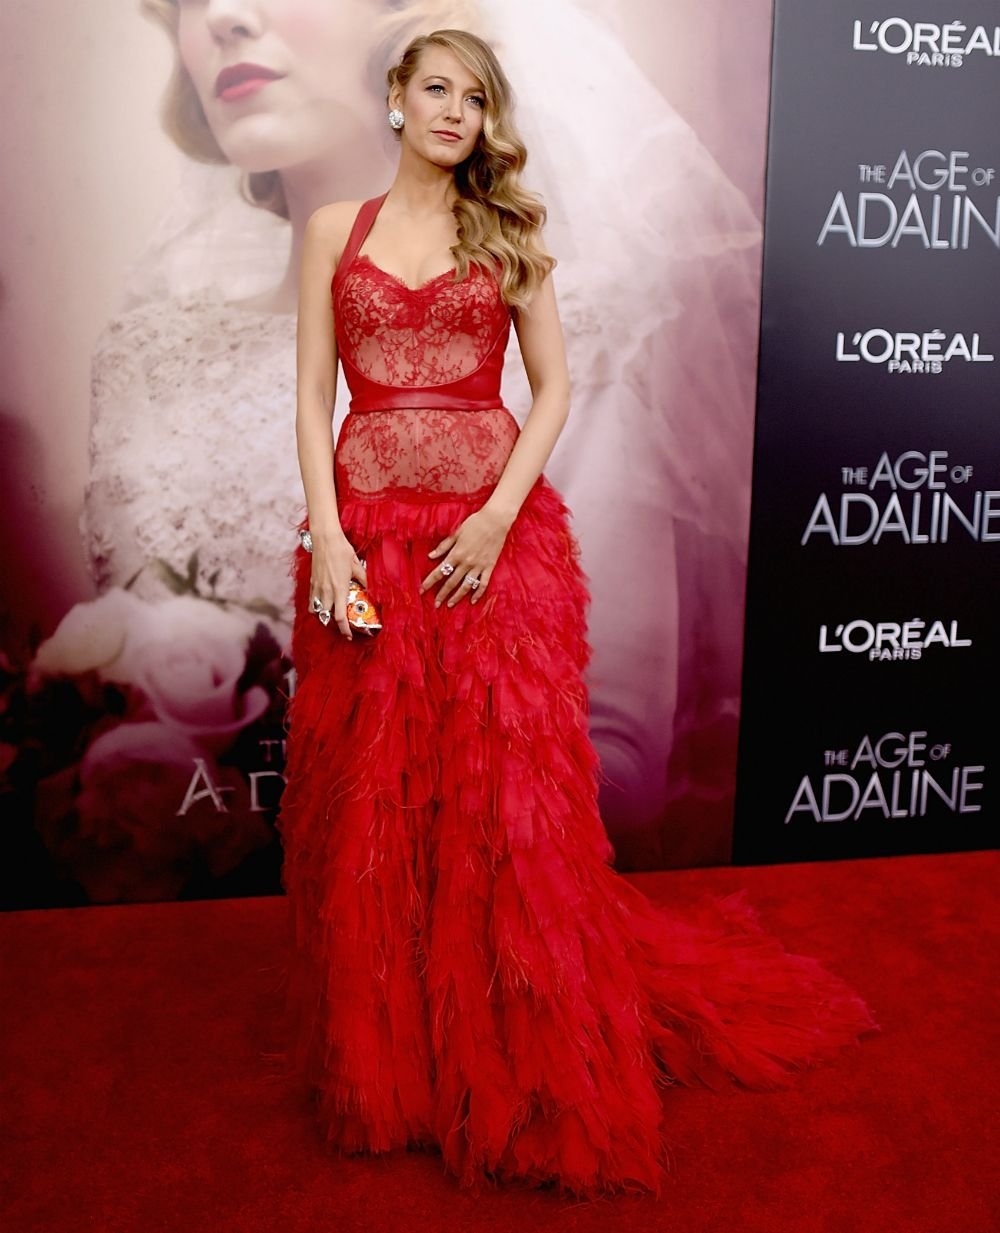 Blake Lively channeling majorly chic Melisandre vibes